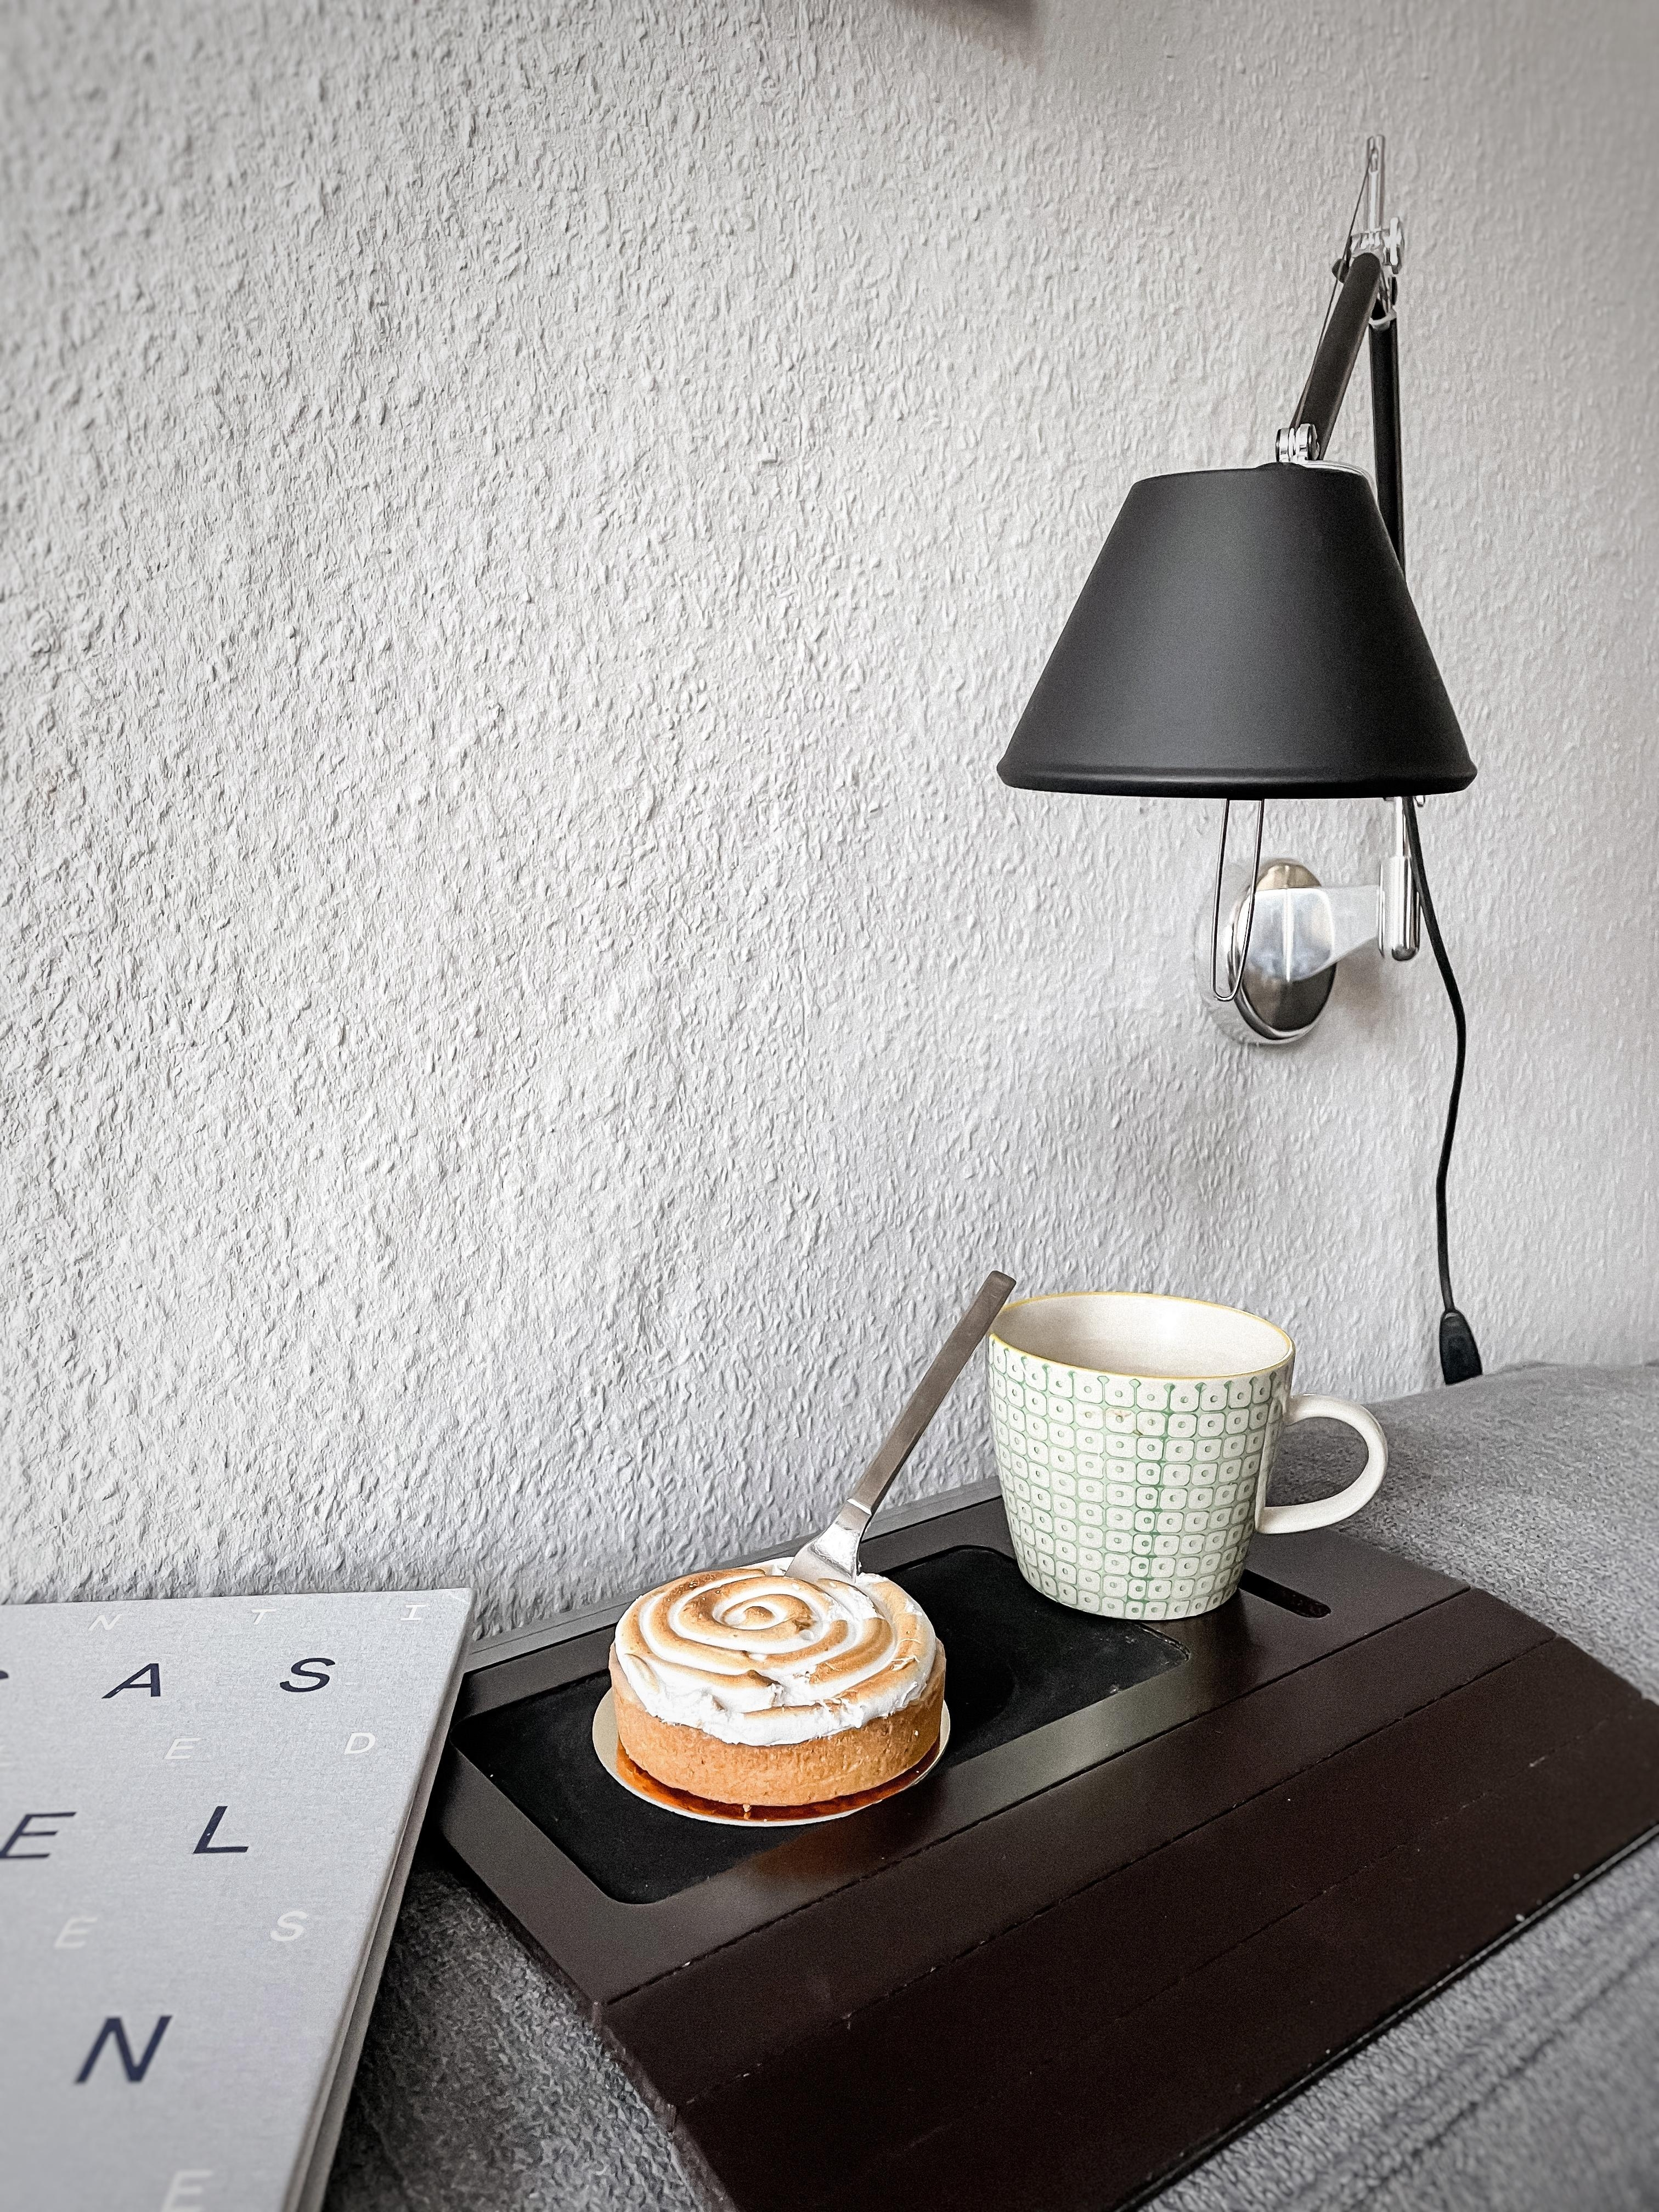 coffee moment #wandlampe #sofa #pause #kaffeepause #törtchen #couchstyle